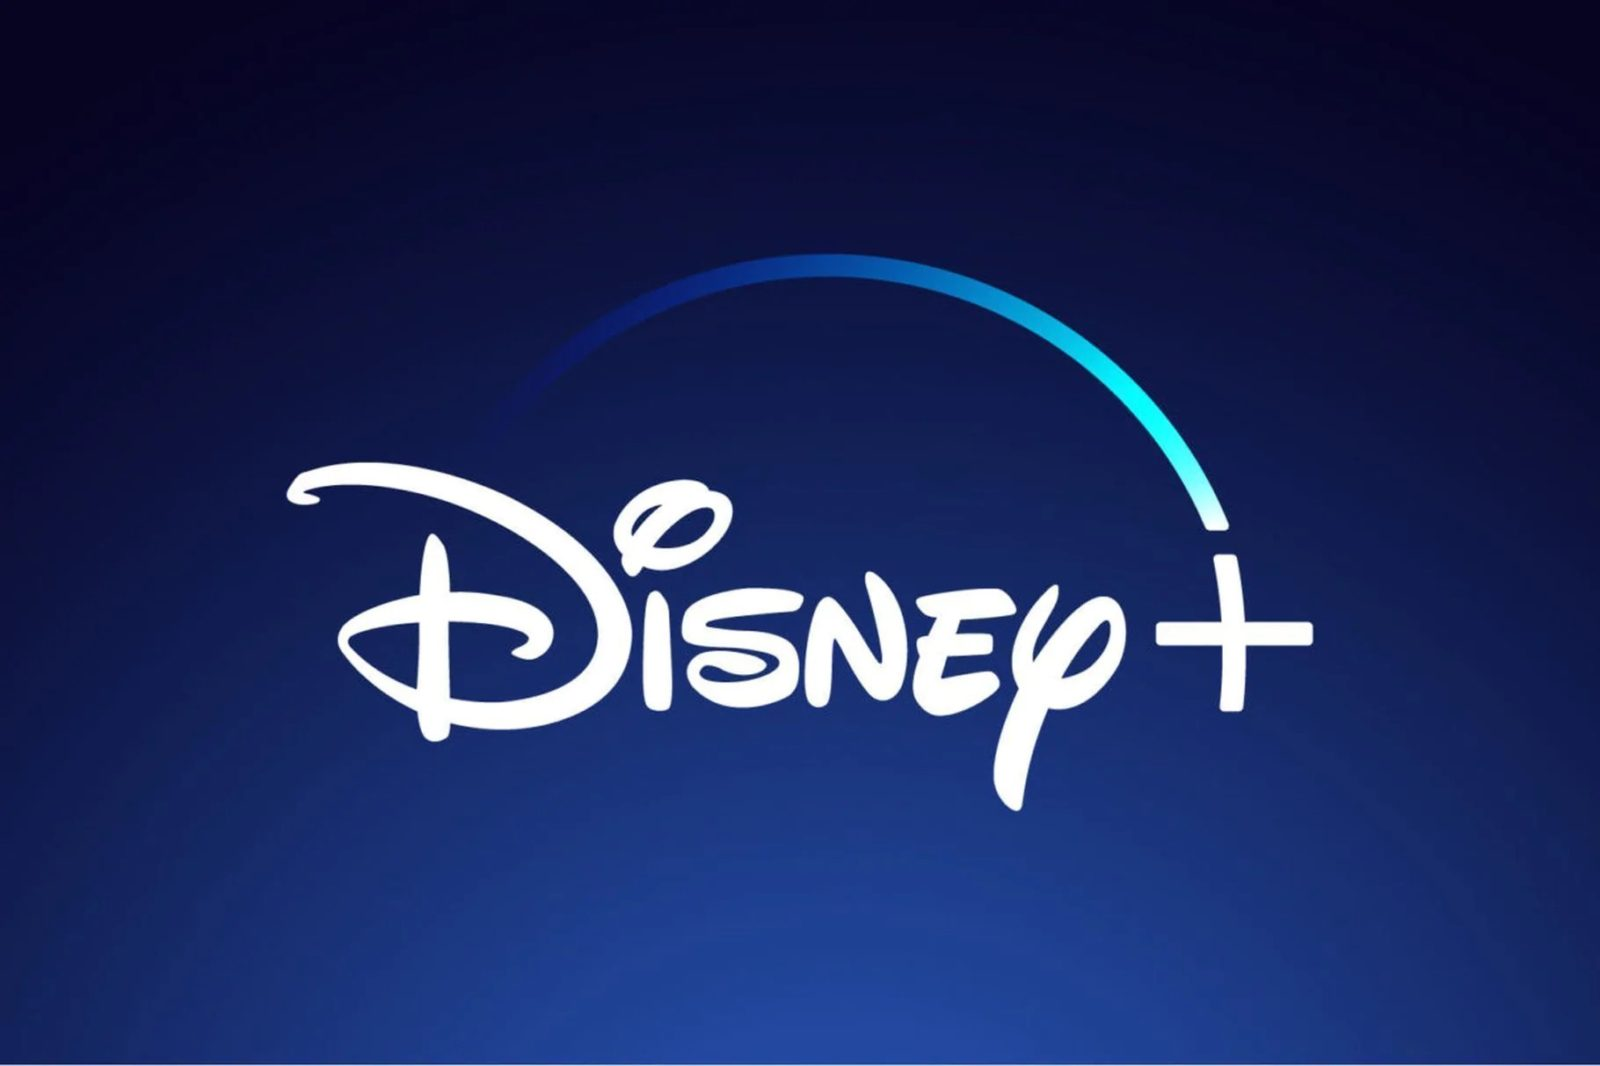 Disney Plus - 2019 D23 Expo Presentation - Logo